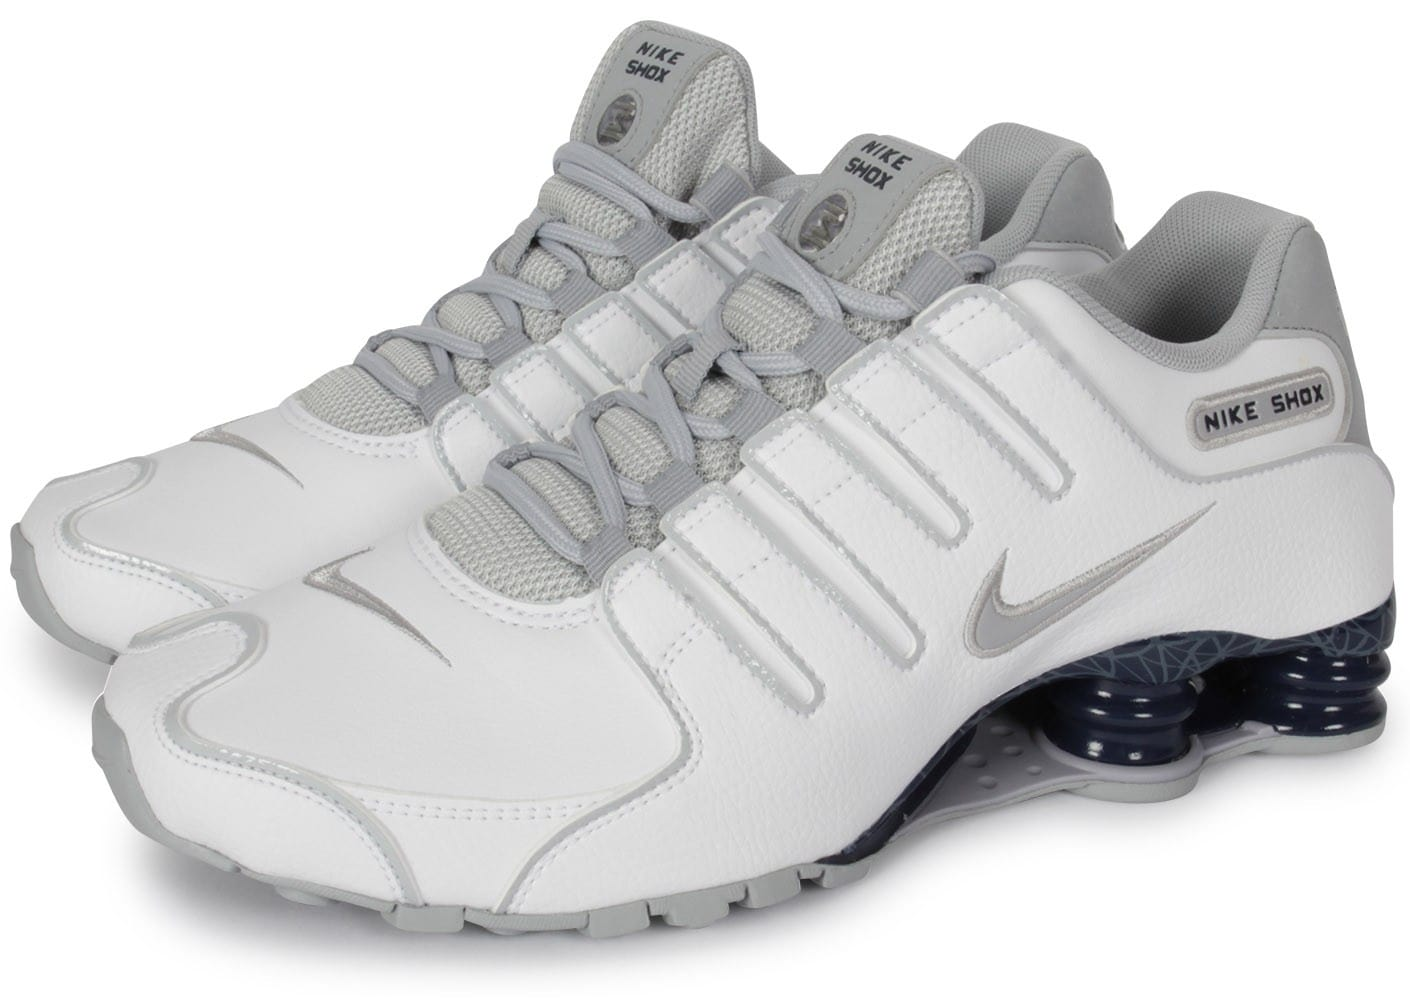 Nz Blanche Nike Homme Chaussures Chausport Baskets Shox dECoWQrxBe